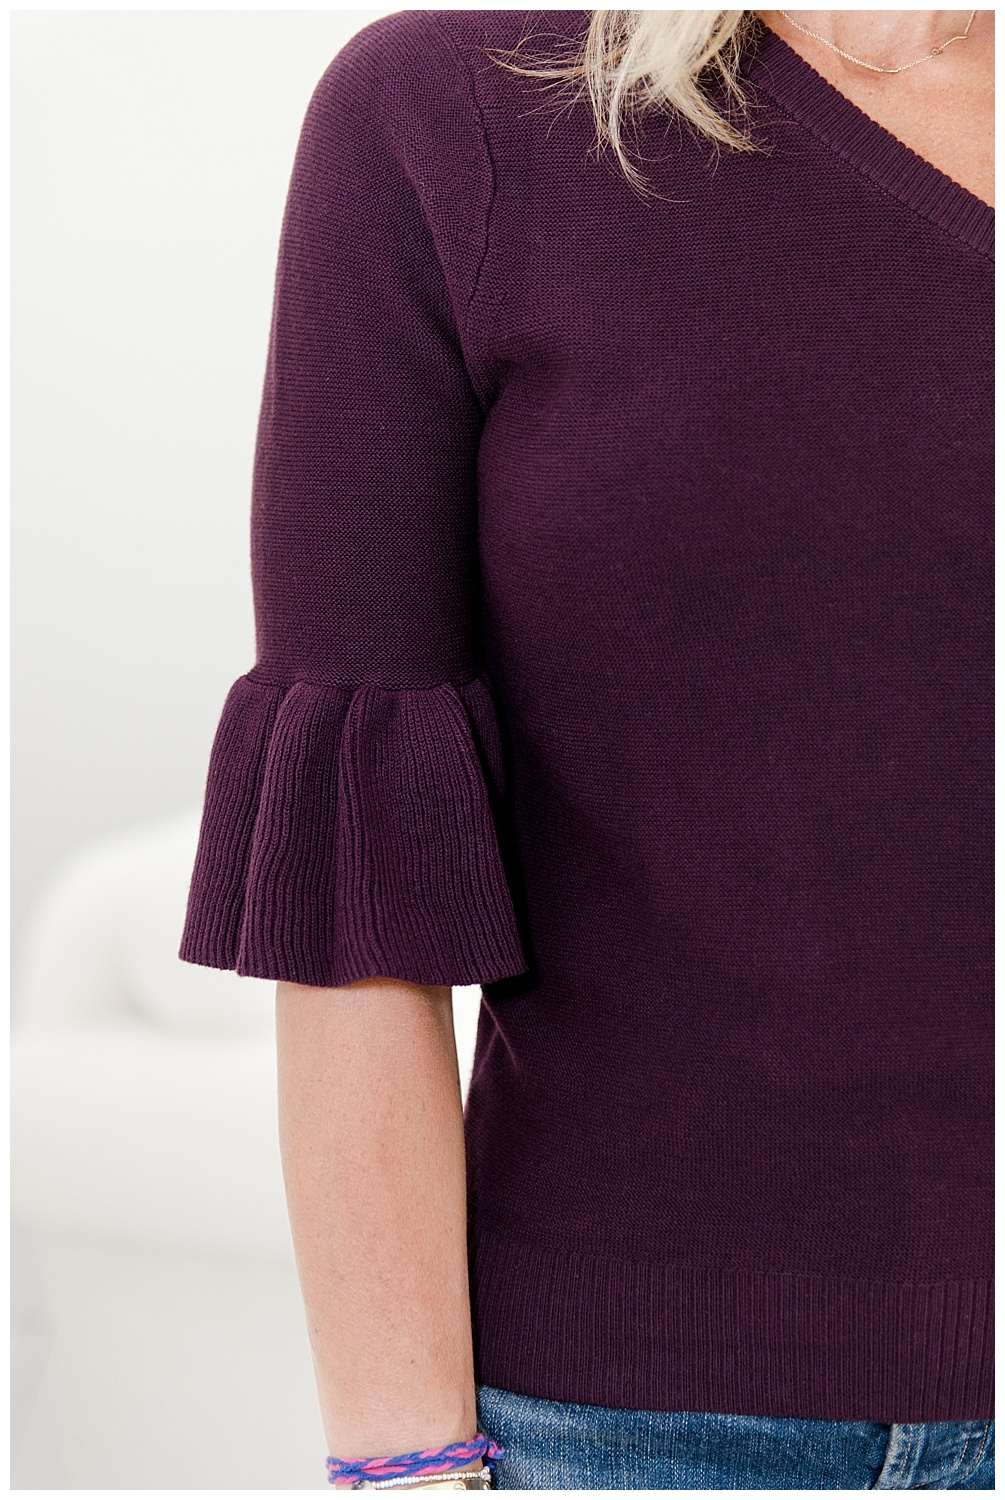 One Shoulder Sweater_1622.jpg